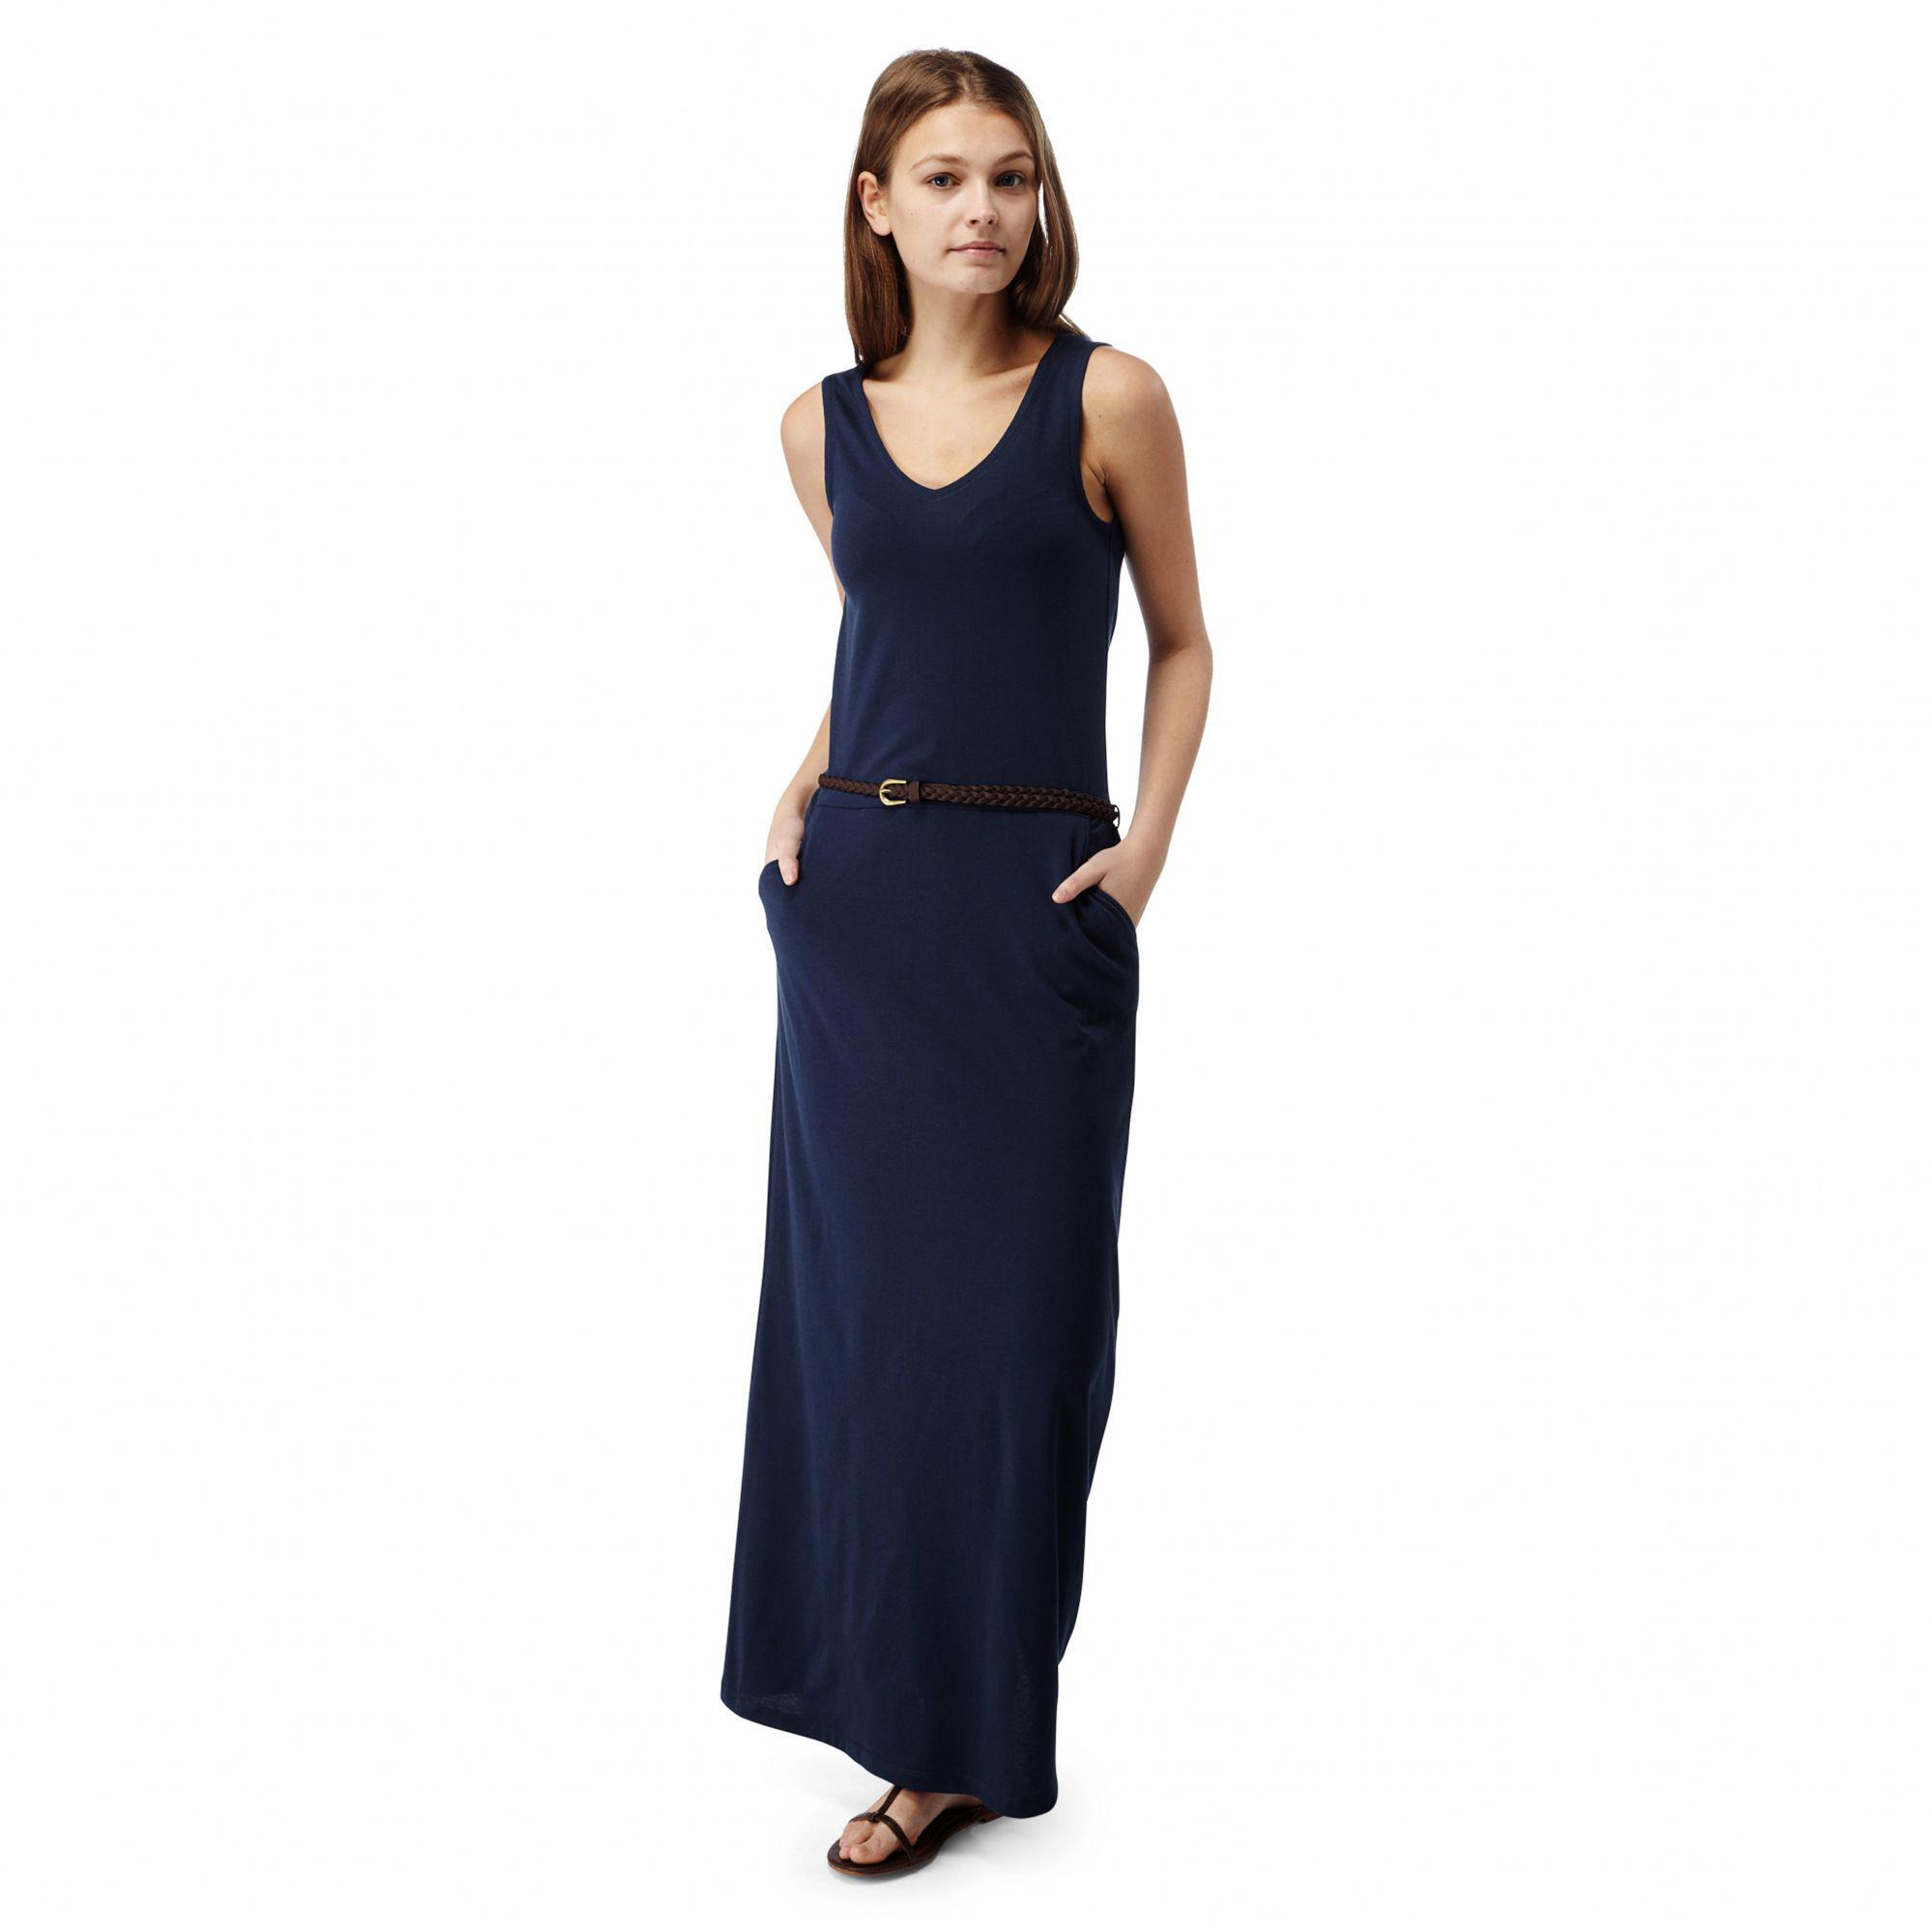 125dcdfc1b7 Craghoppers Night Blue Nosilife Amiee Maxi Dress in Blue - Lyst